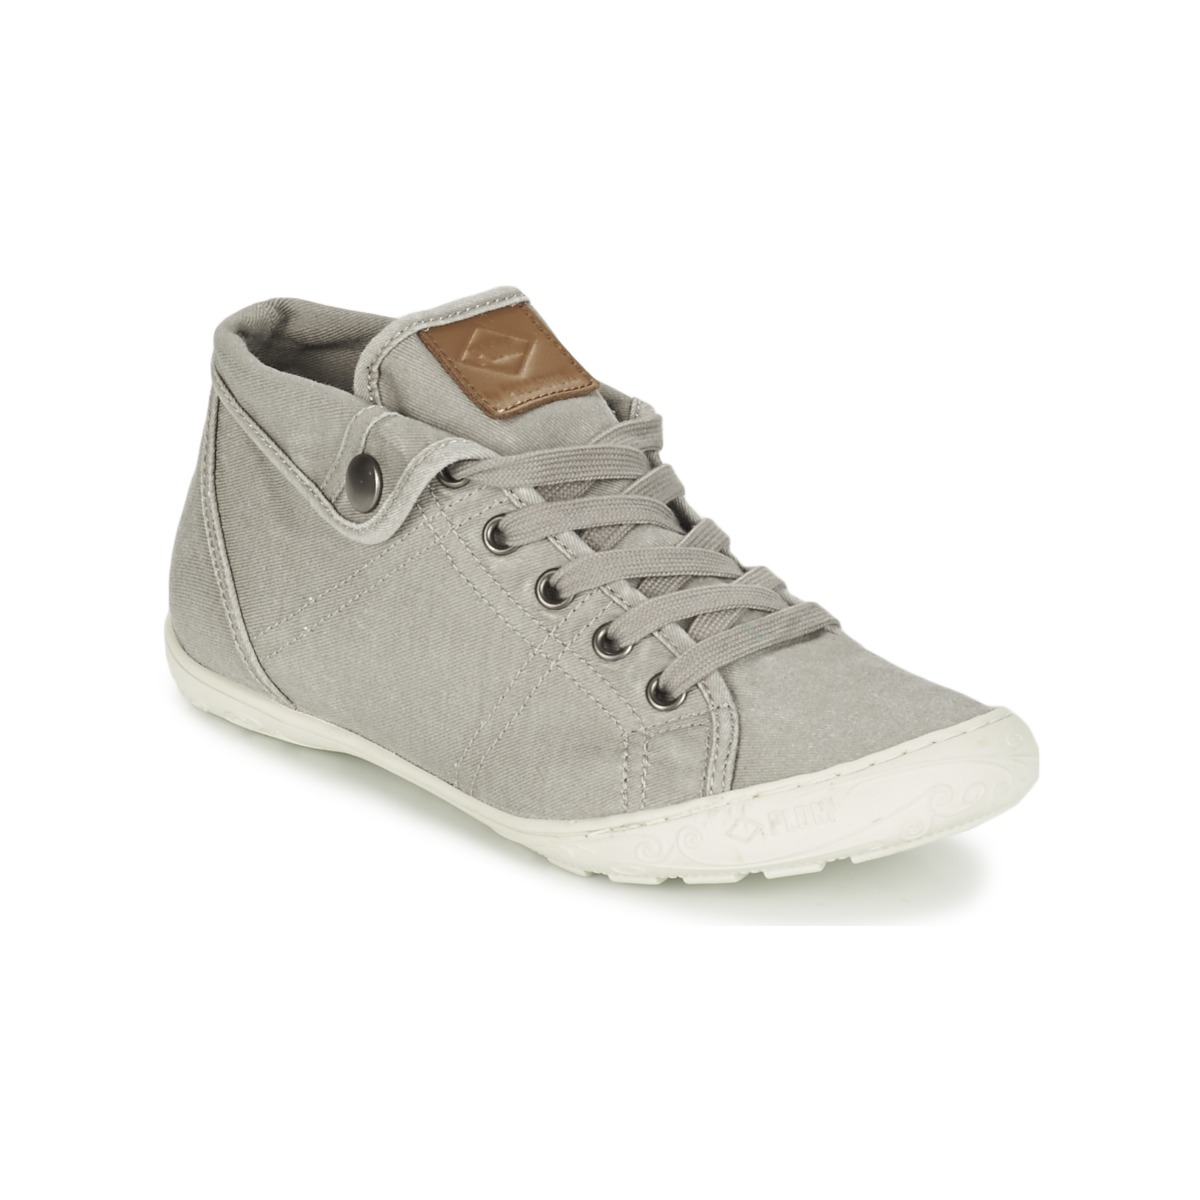 Luxe Marques Soldes FAME - Baskets montantes - dream white